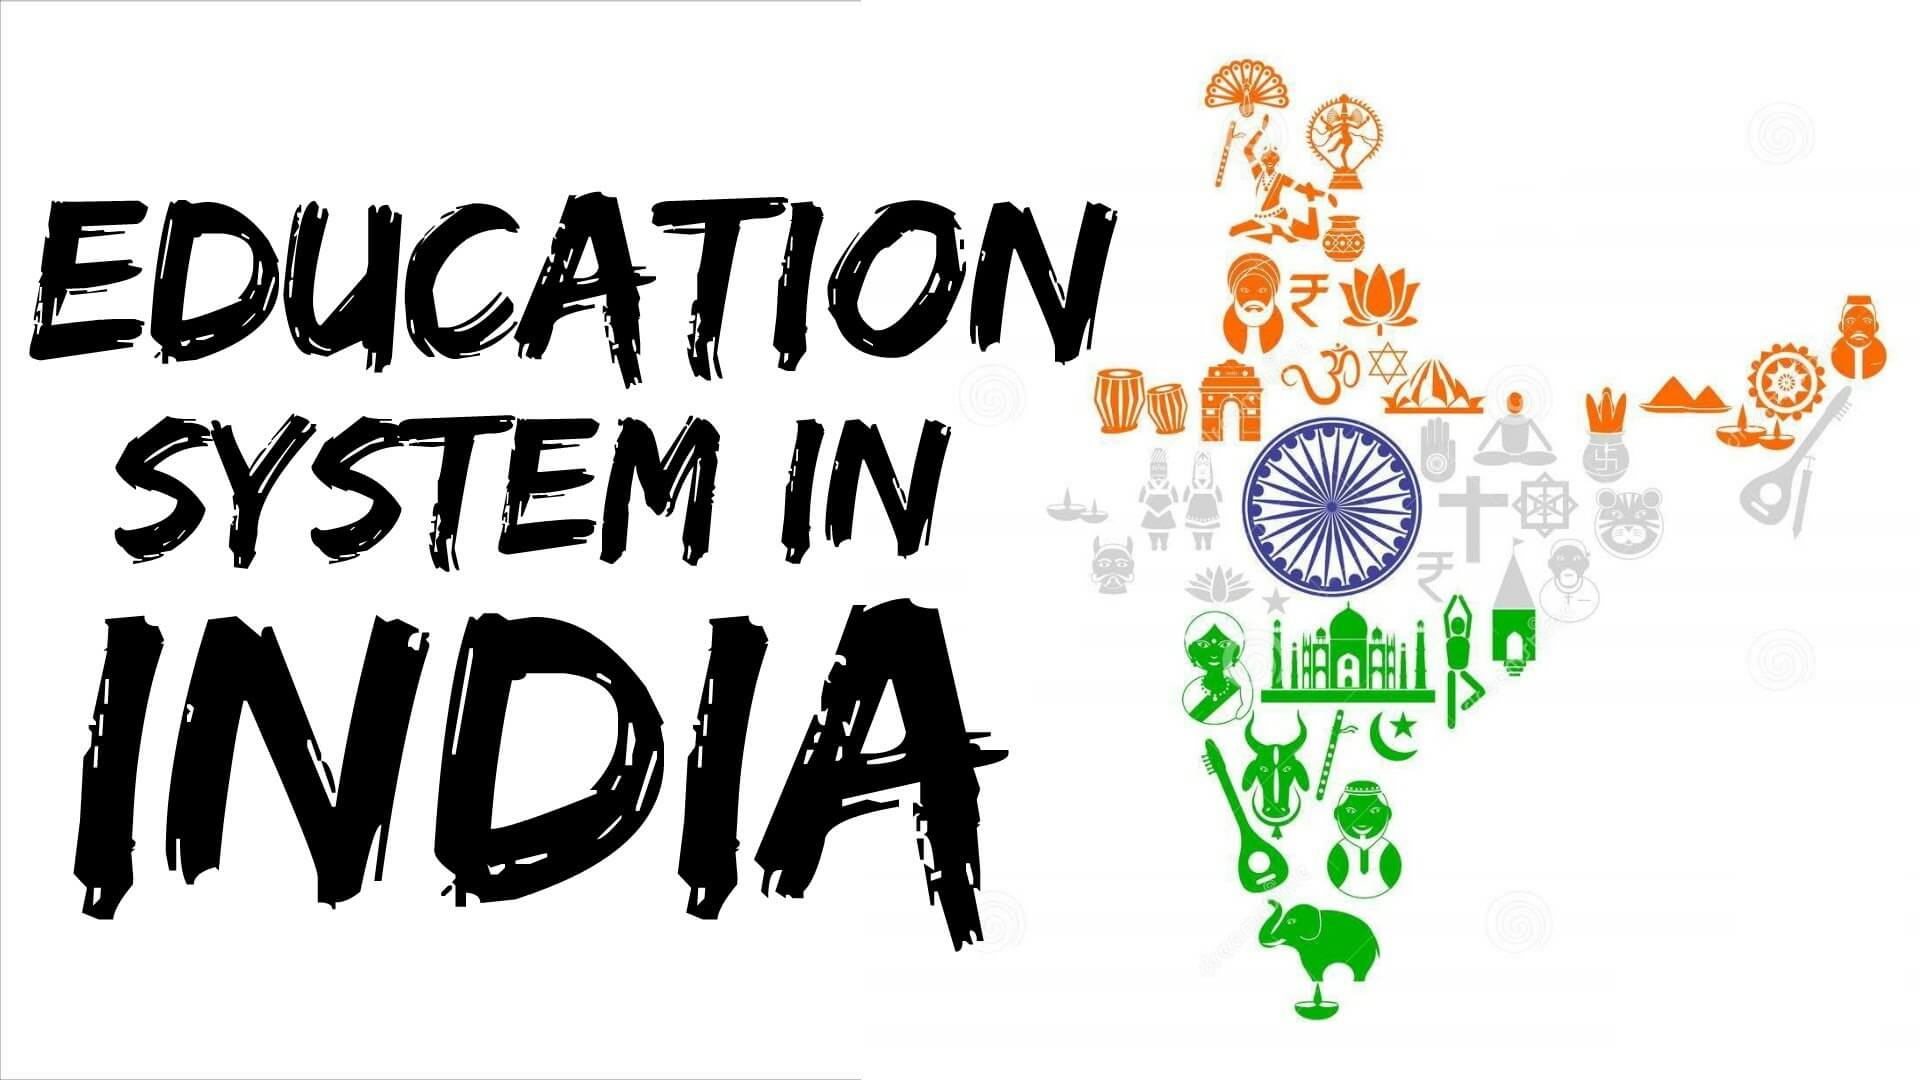 an essay on indian education system Free education papers, essays education system in the philiphines - the philippines has a recent overflowing issue on its education india and japan.